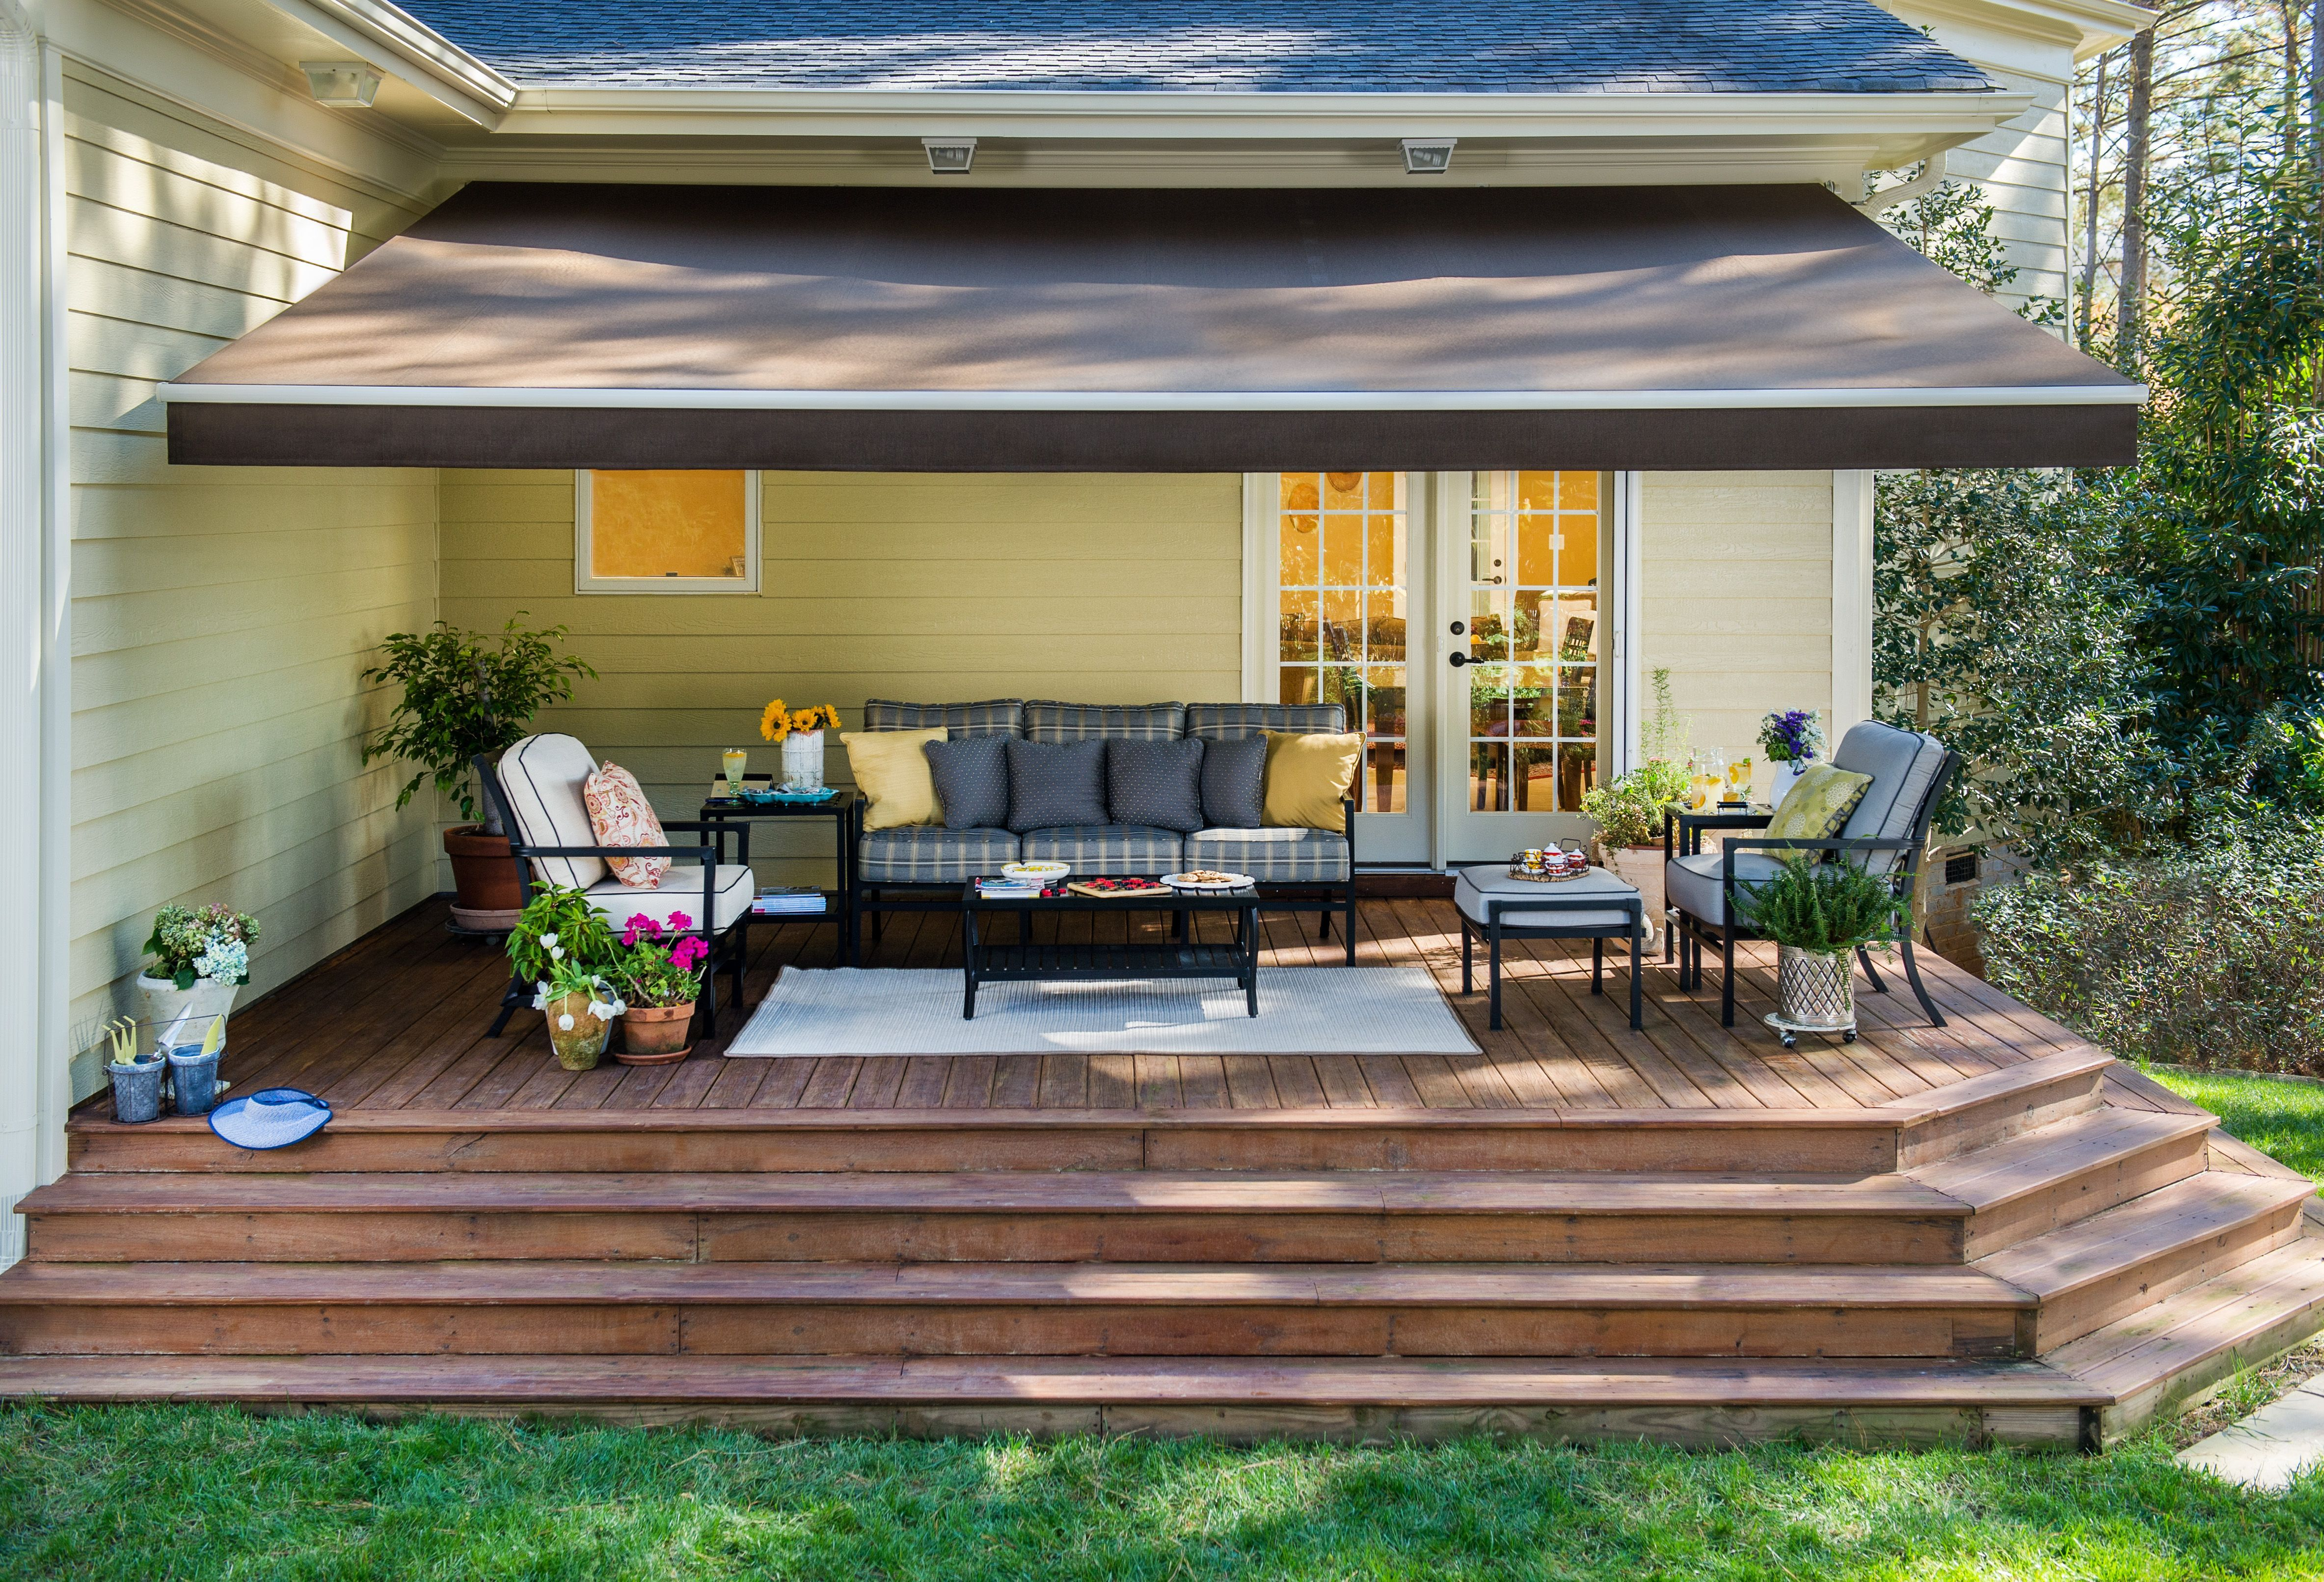 Exterior Sun Setter Retractable Awning With How Much Is A ...